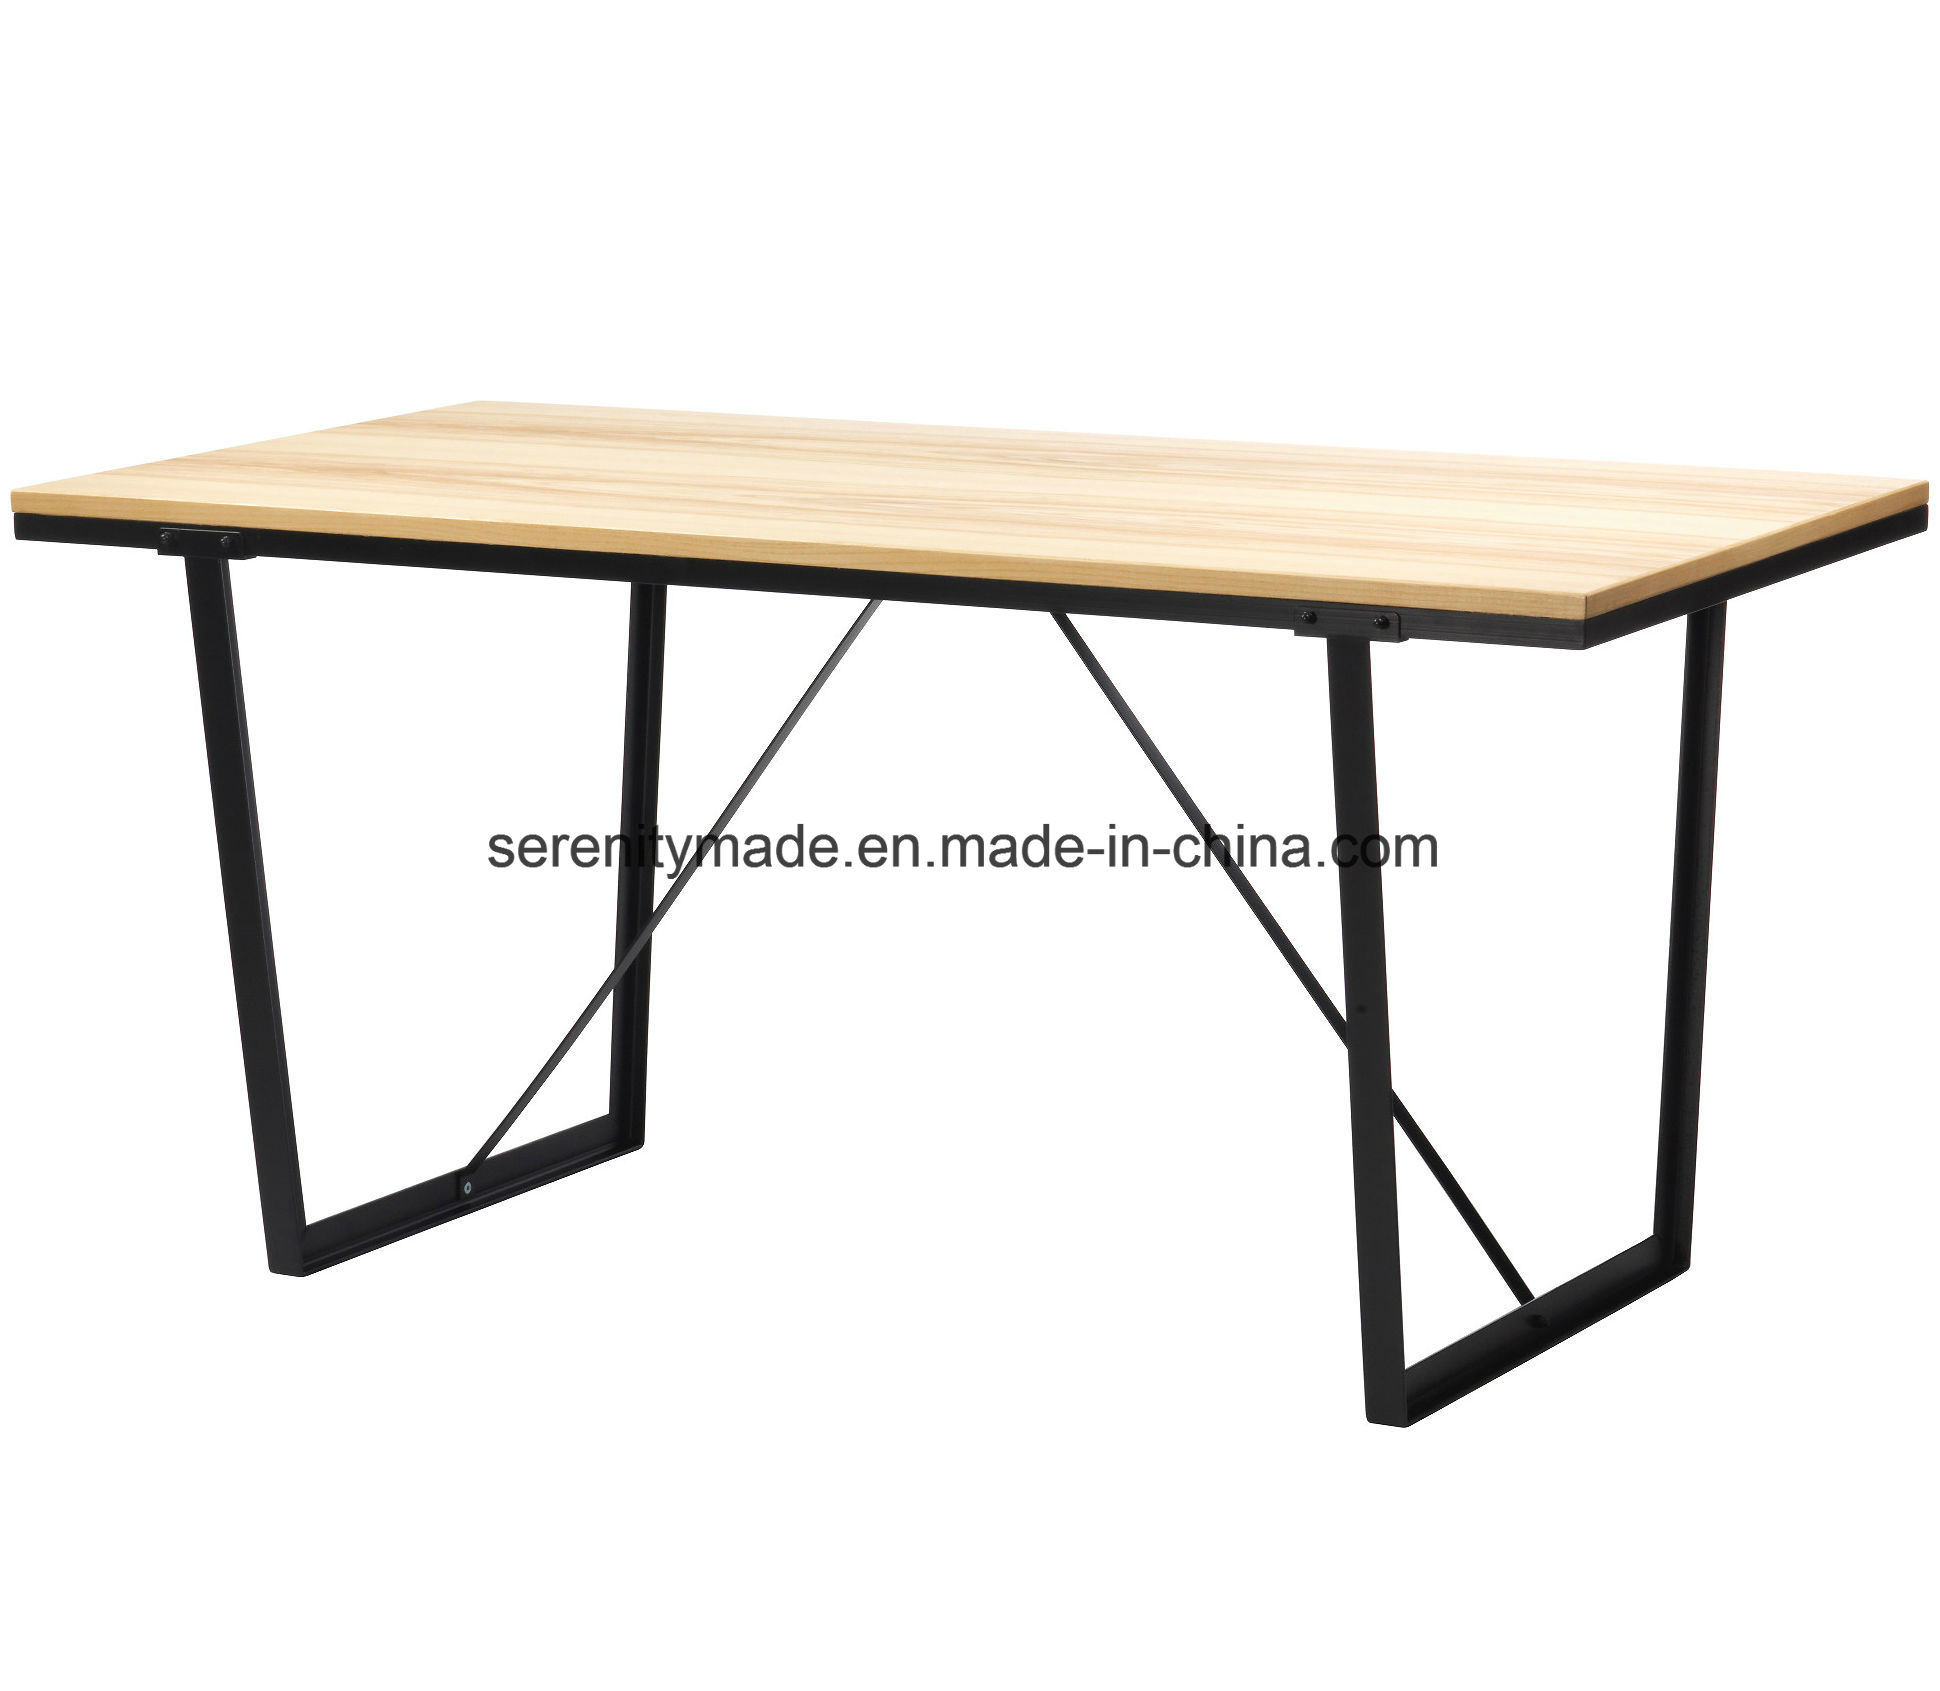 - China Metal Frame Wood Surface Corner Canby Trestle Coffee Table